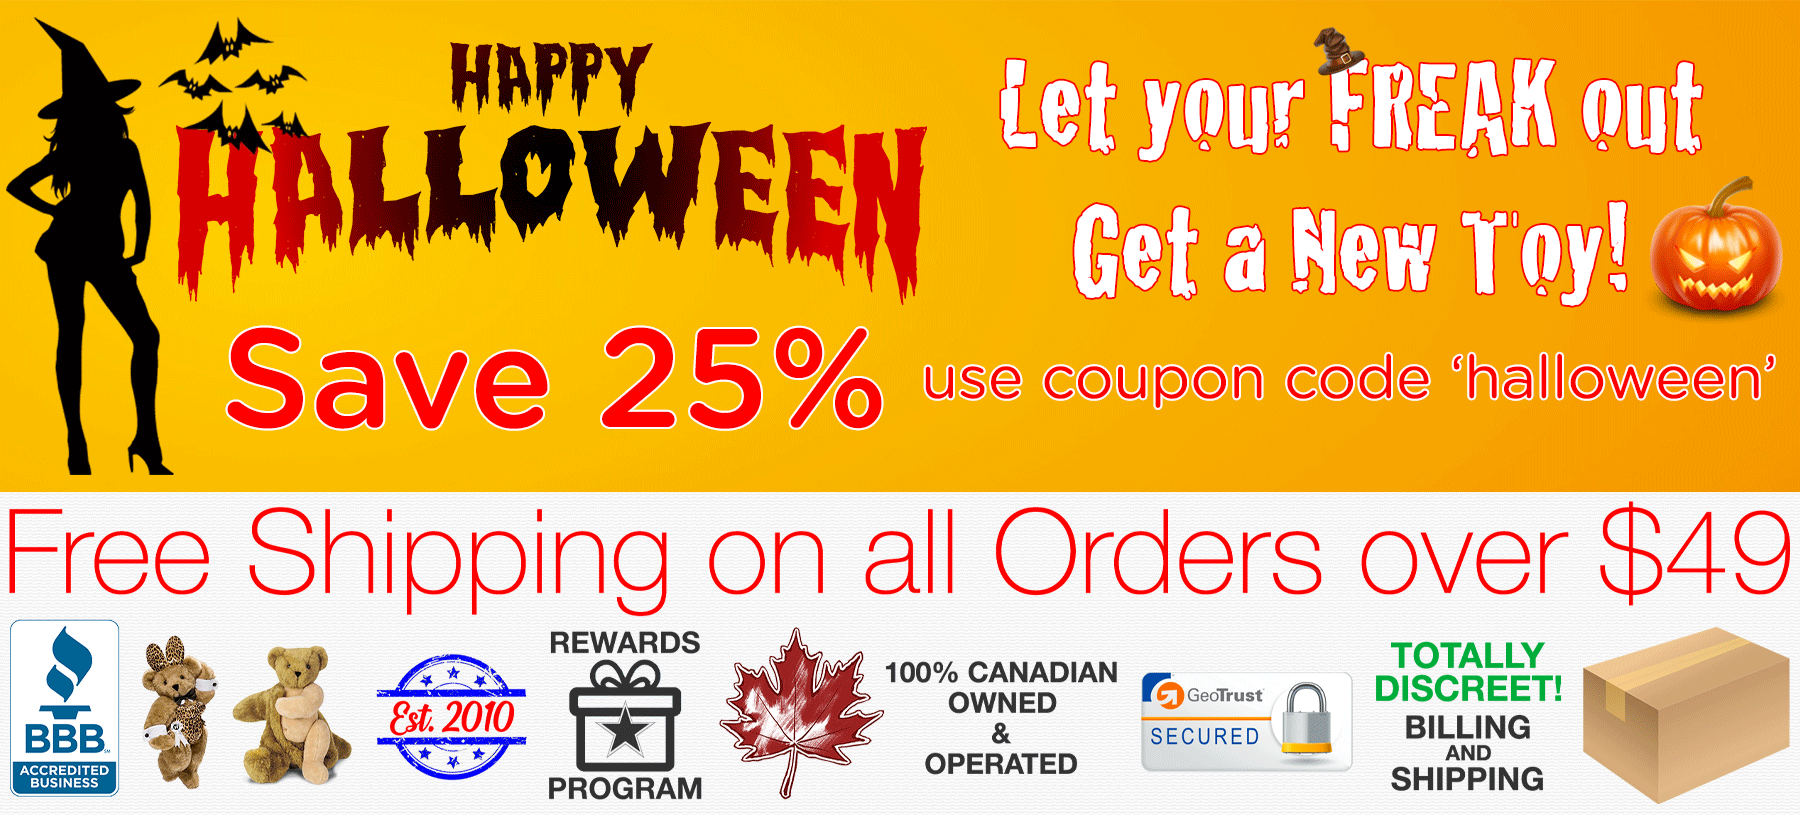 Bed Time Toys, Halloween Sex Toy Sale, Sex Toys Canada